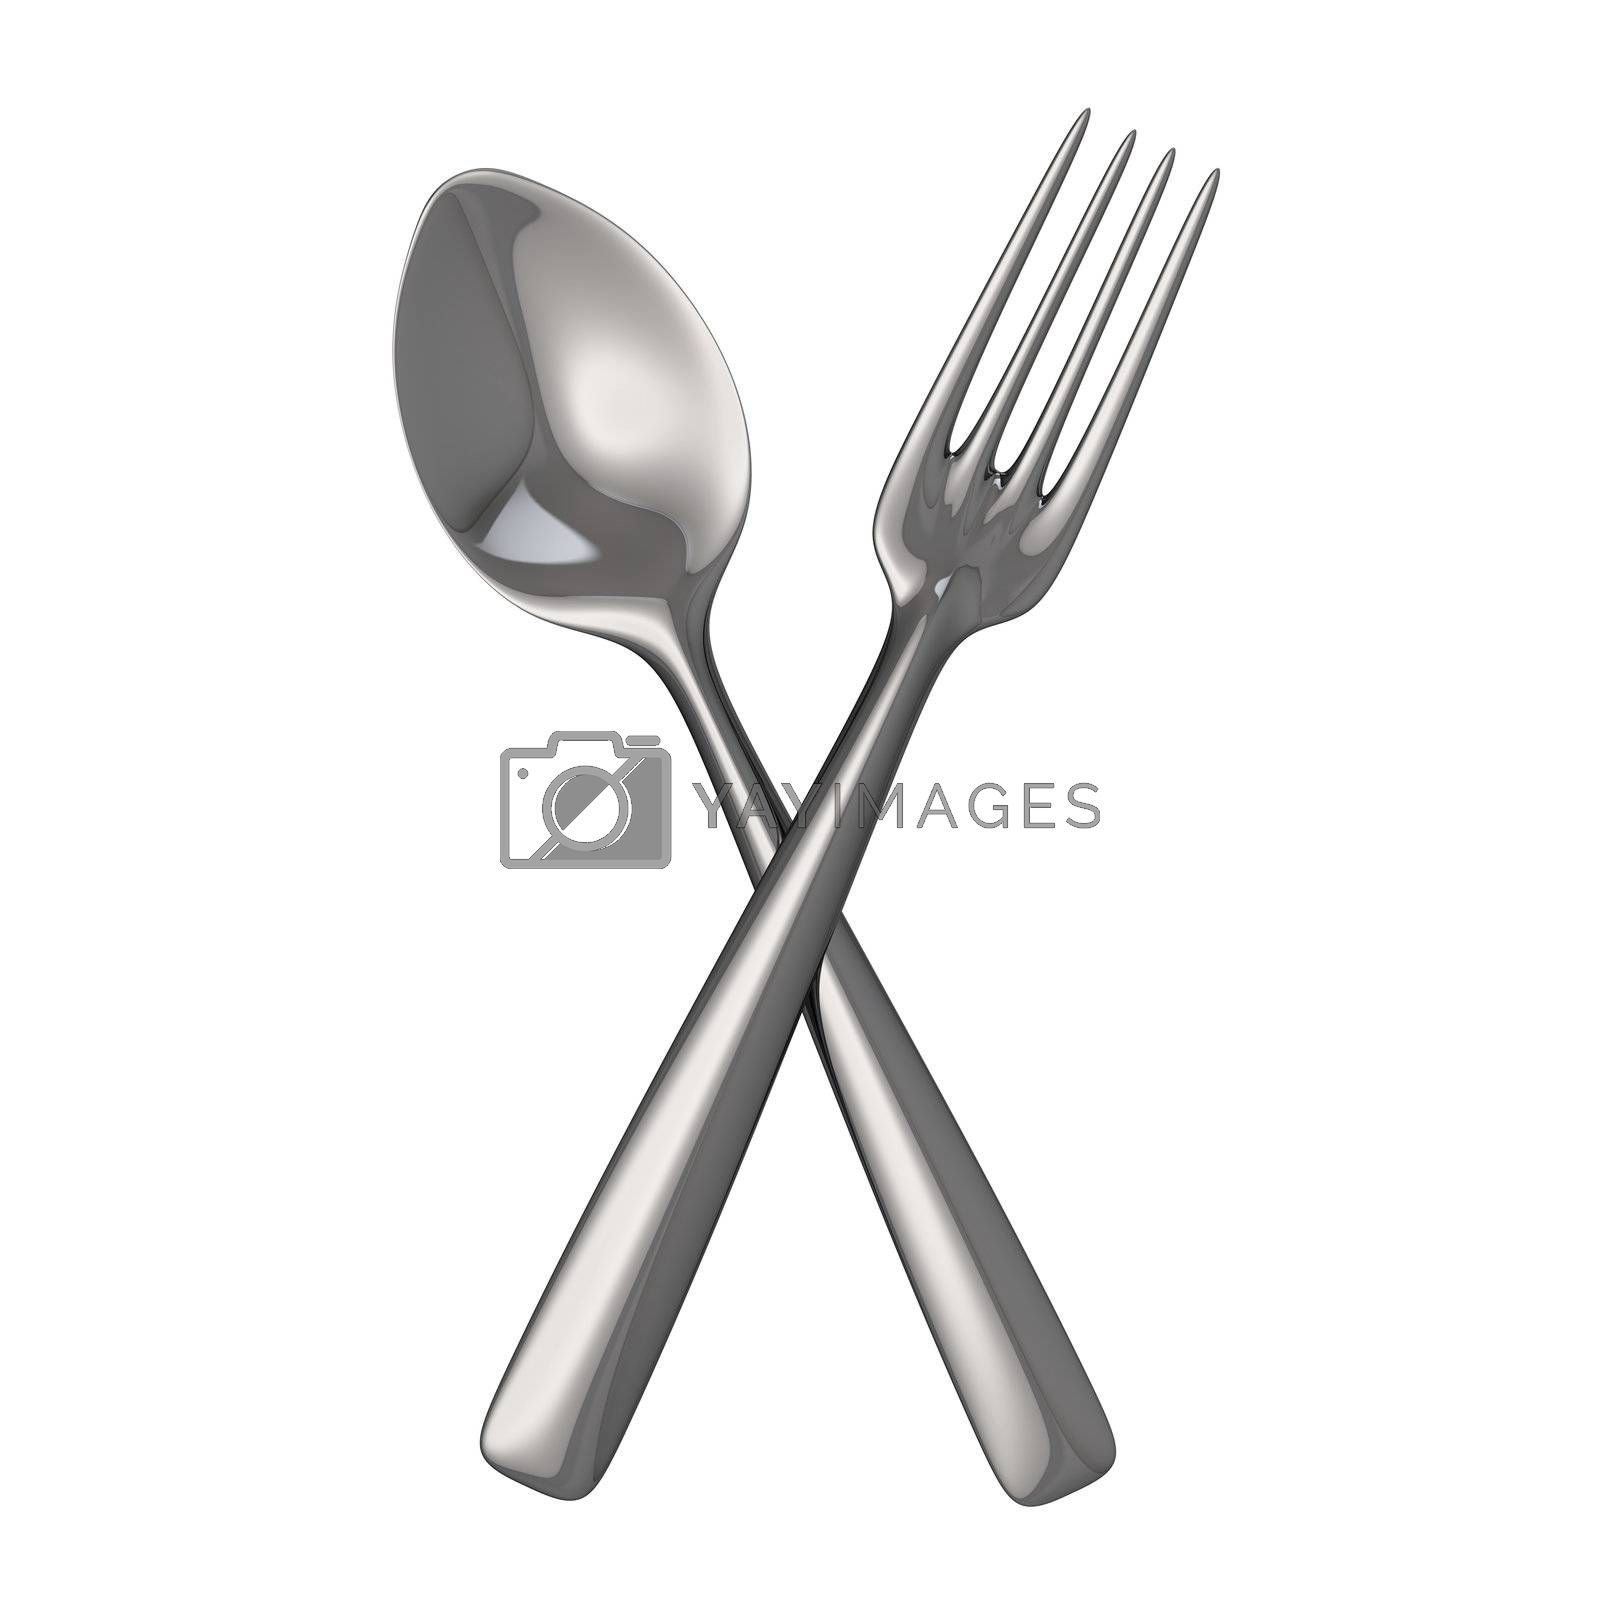 Crossed metal spoon and fork isolated on the white background